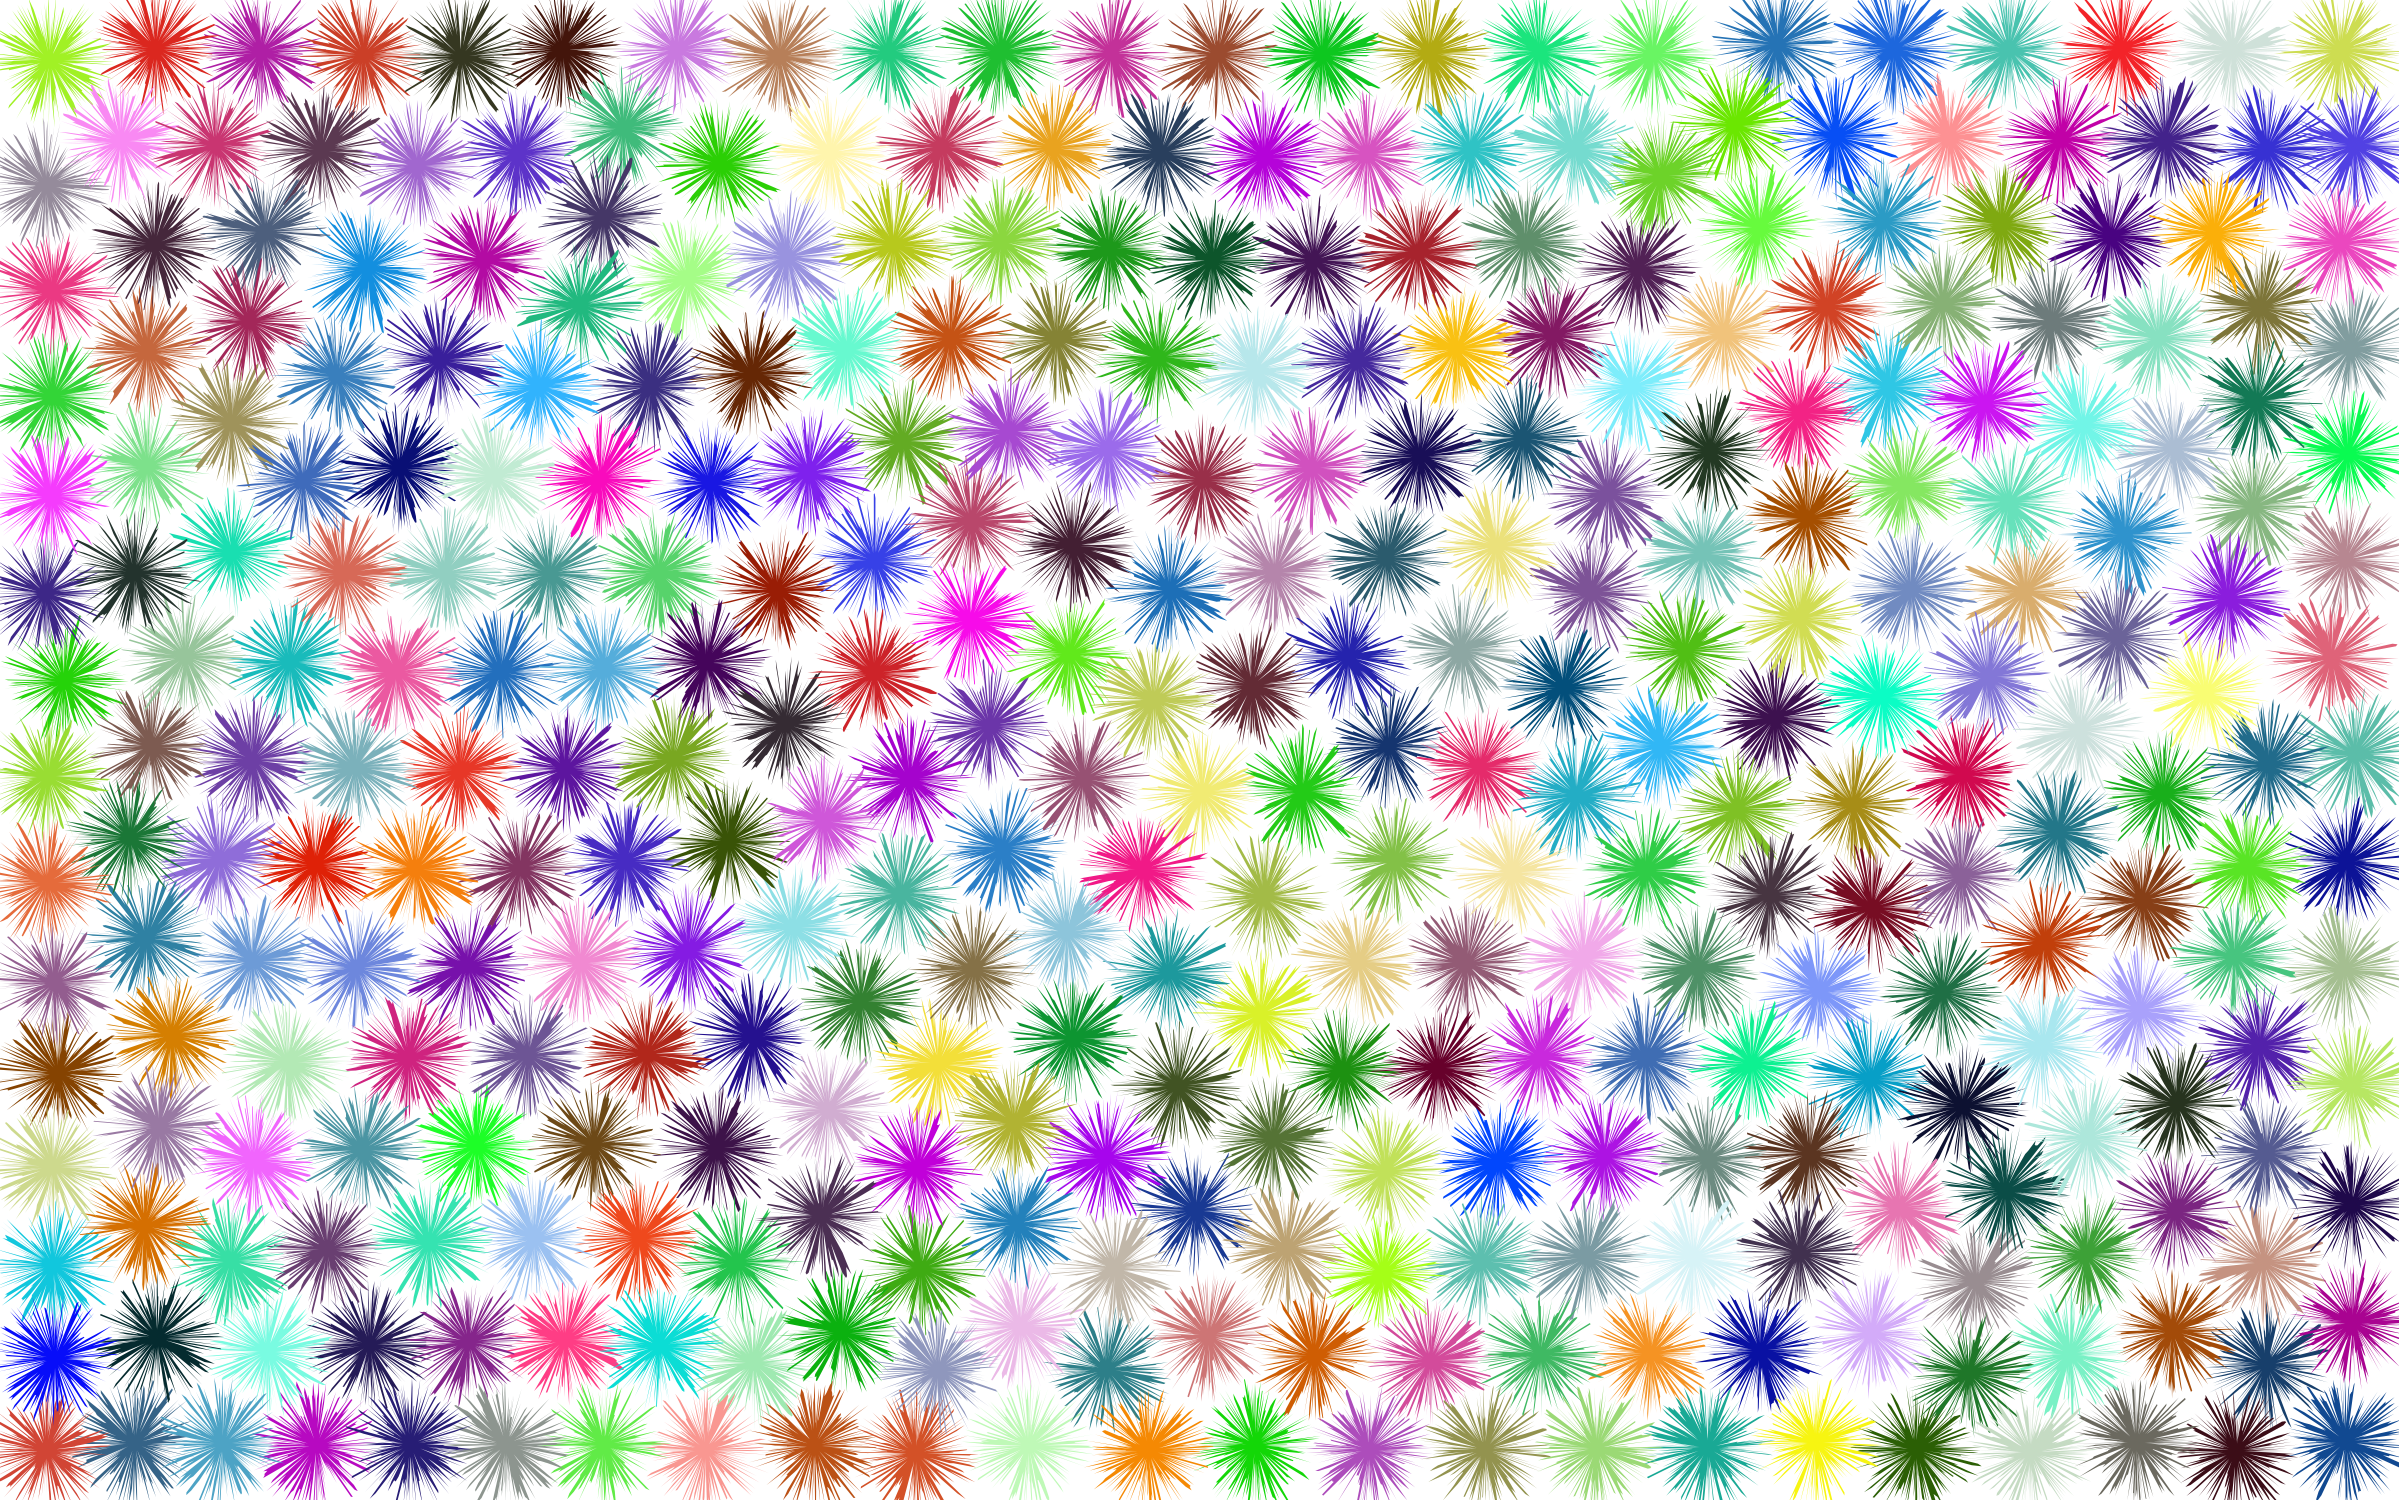 Prismatic Fuzzy Background No Background by GDJ